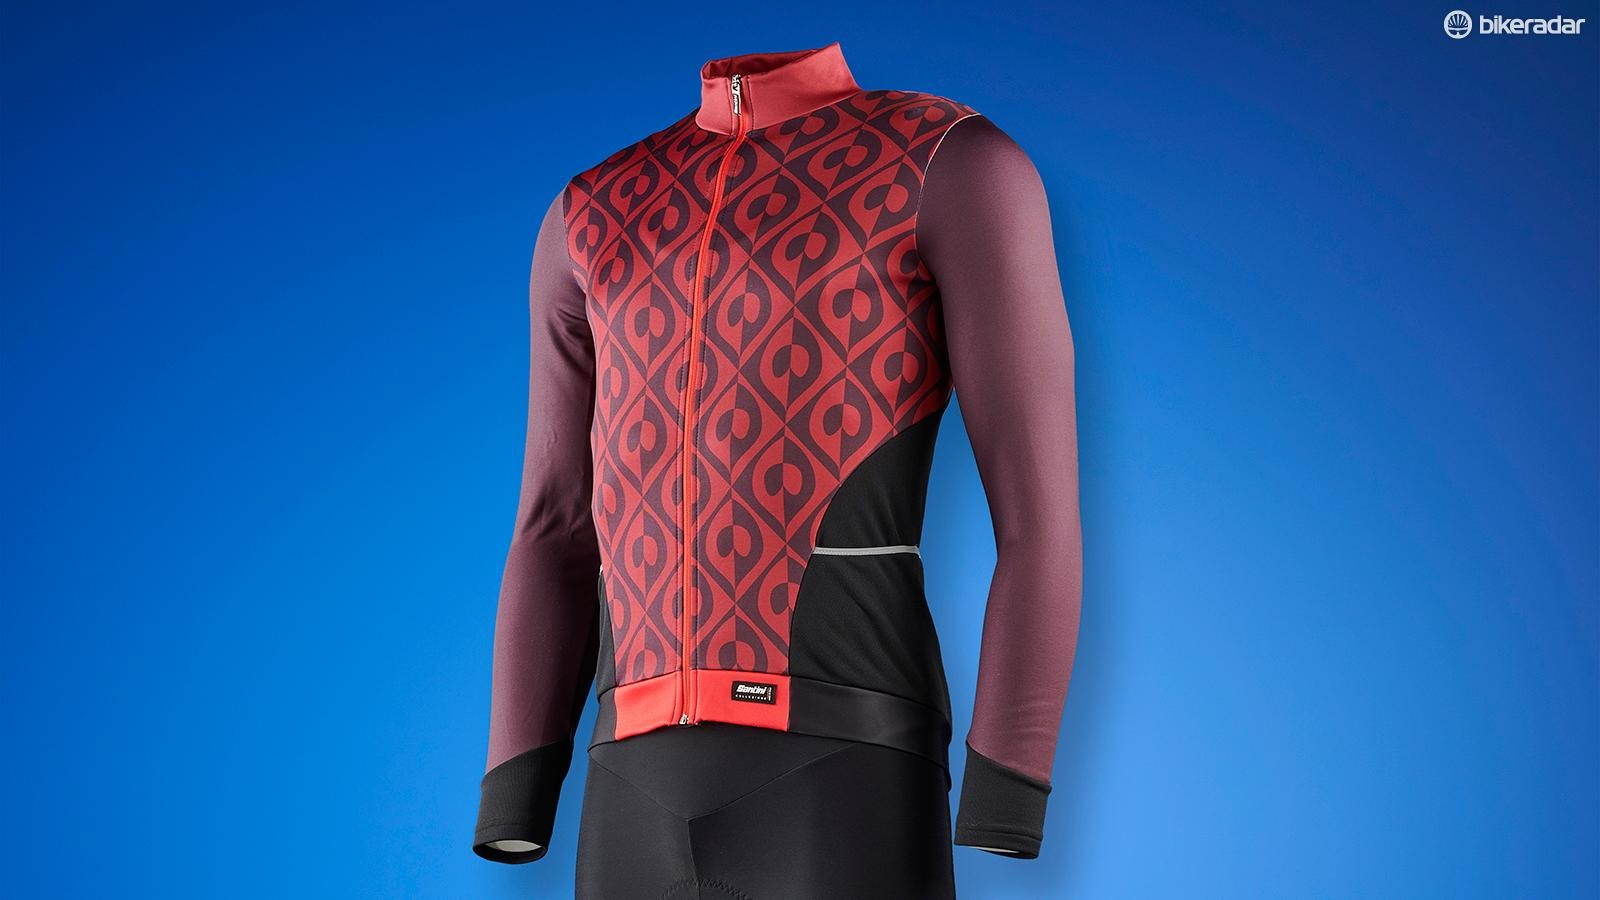 The Coral Jersey has striking looks with its peacock-inspired pattern